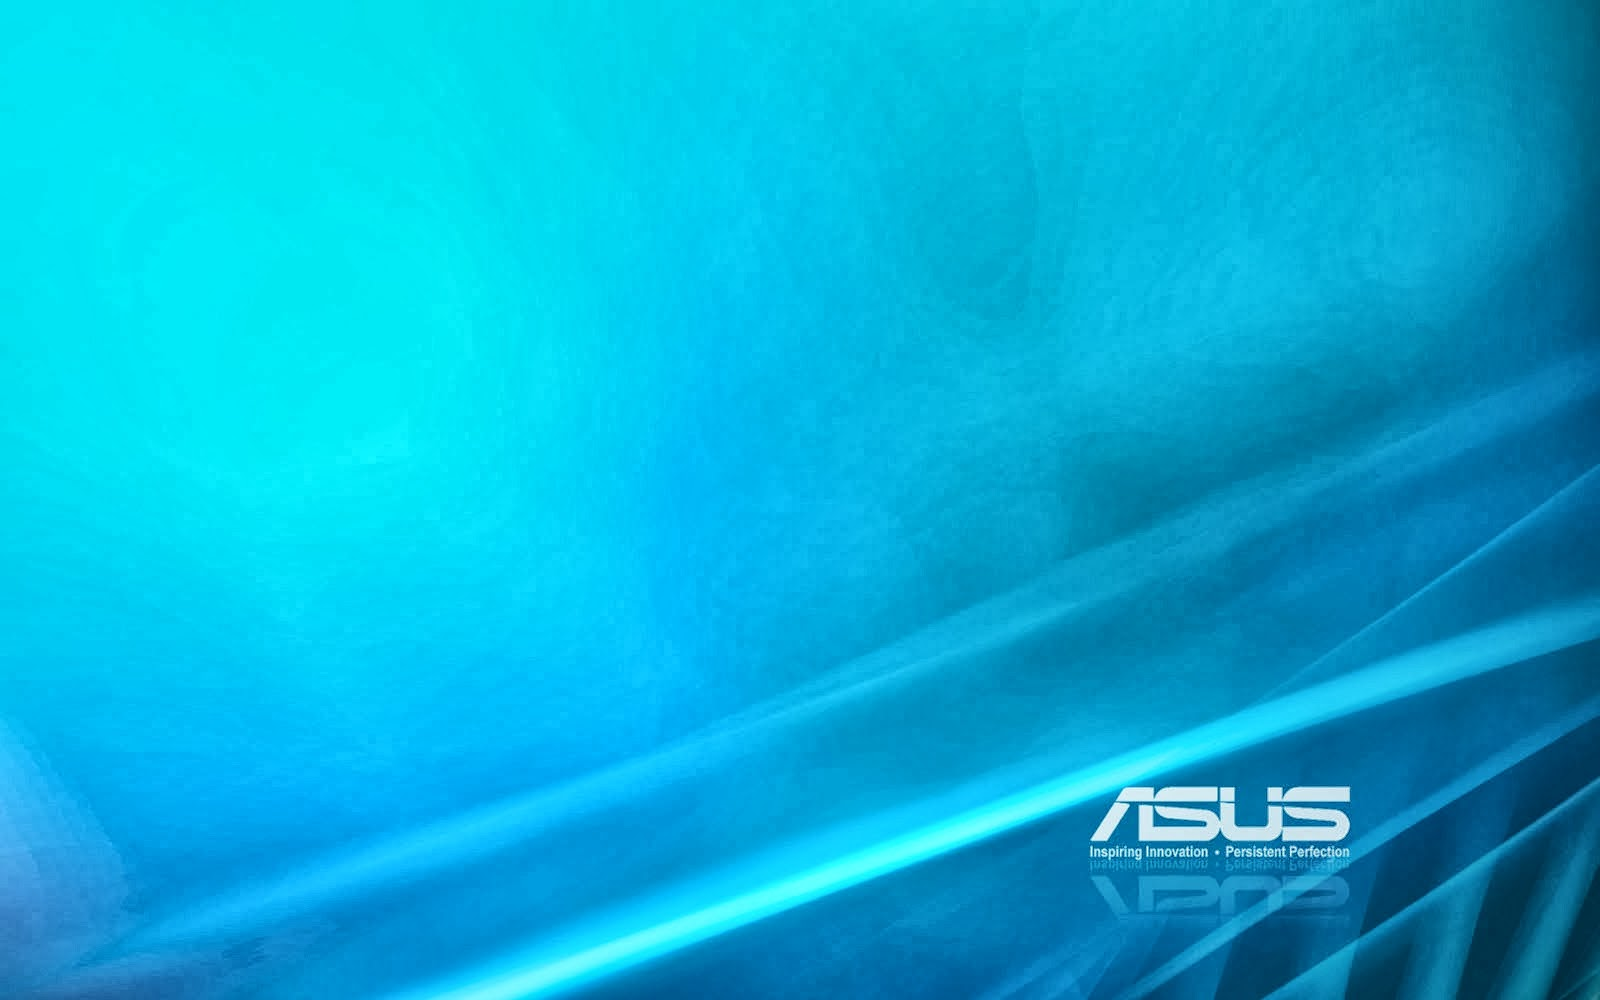 ASUS HD WALLPAPERS FREE HD WALLPAPERS 1600x1000